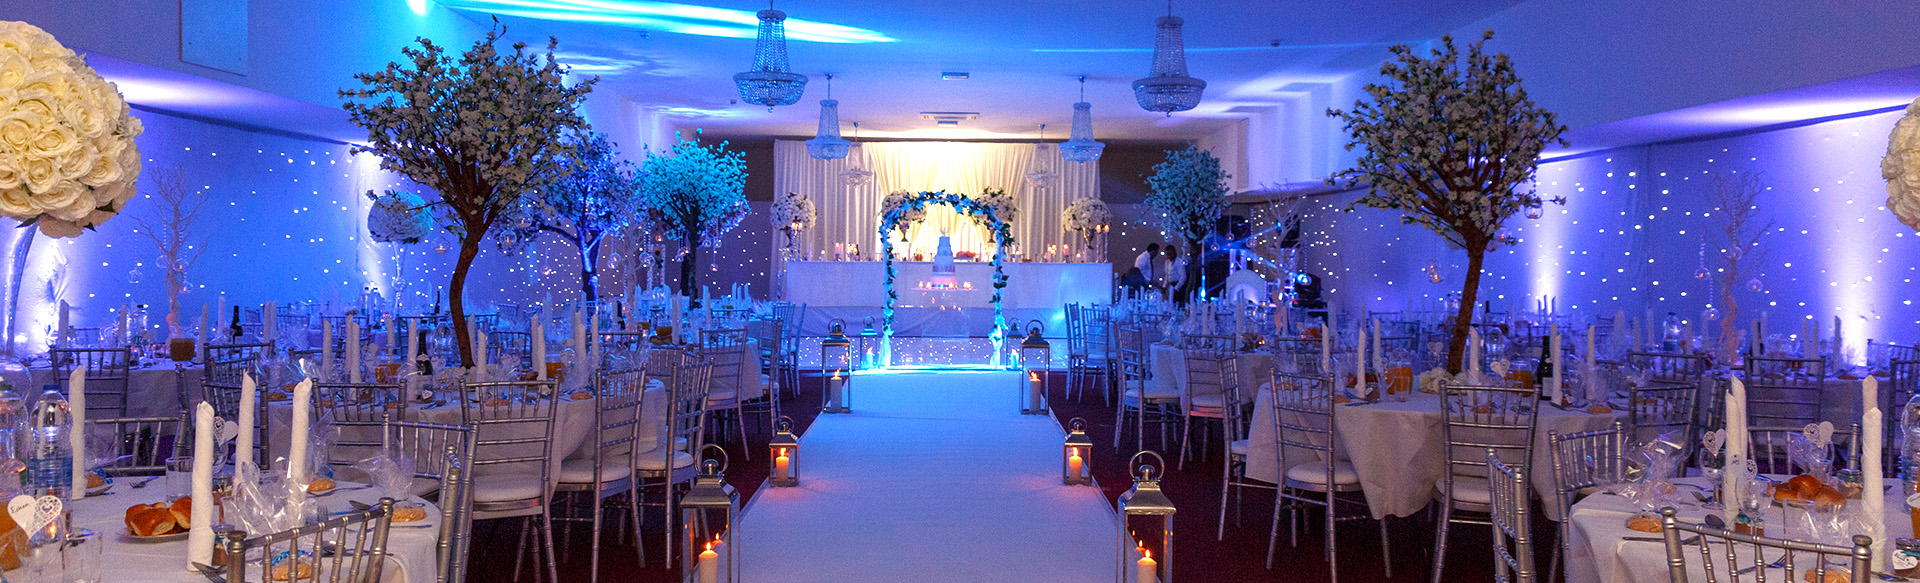 Imperial House Banqueting Croydon